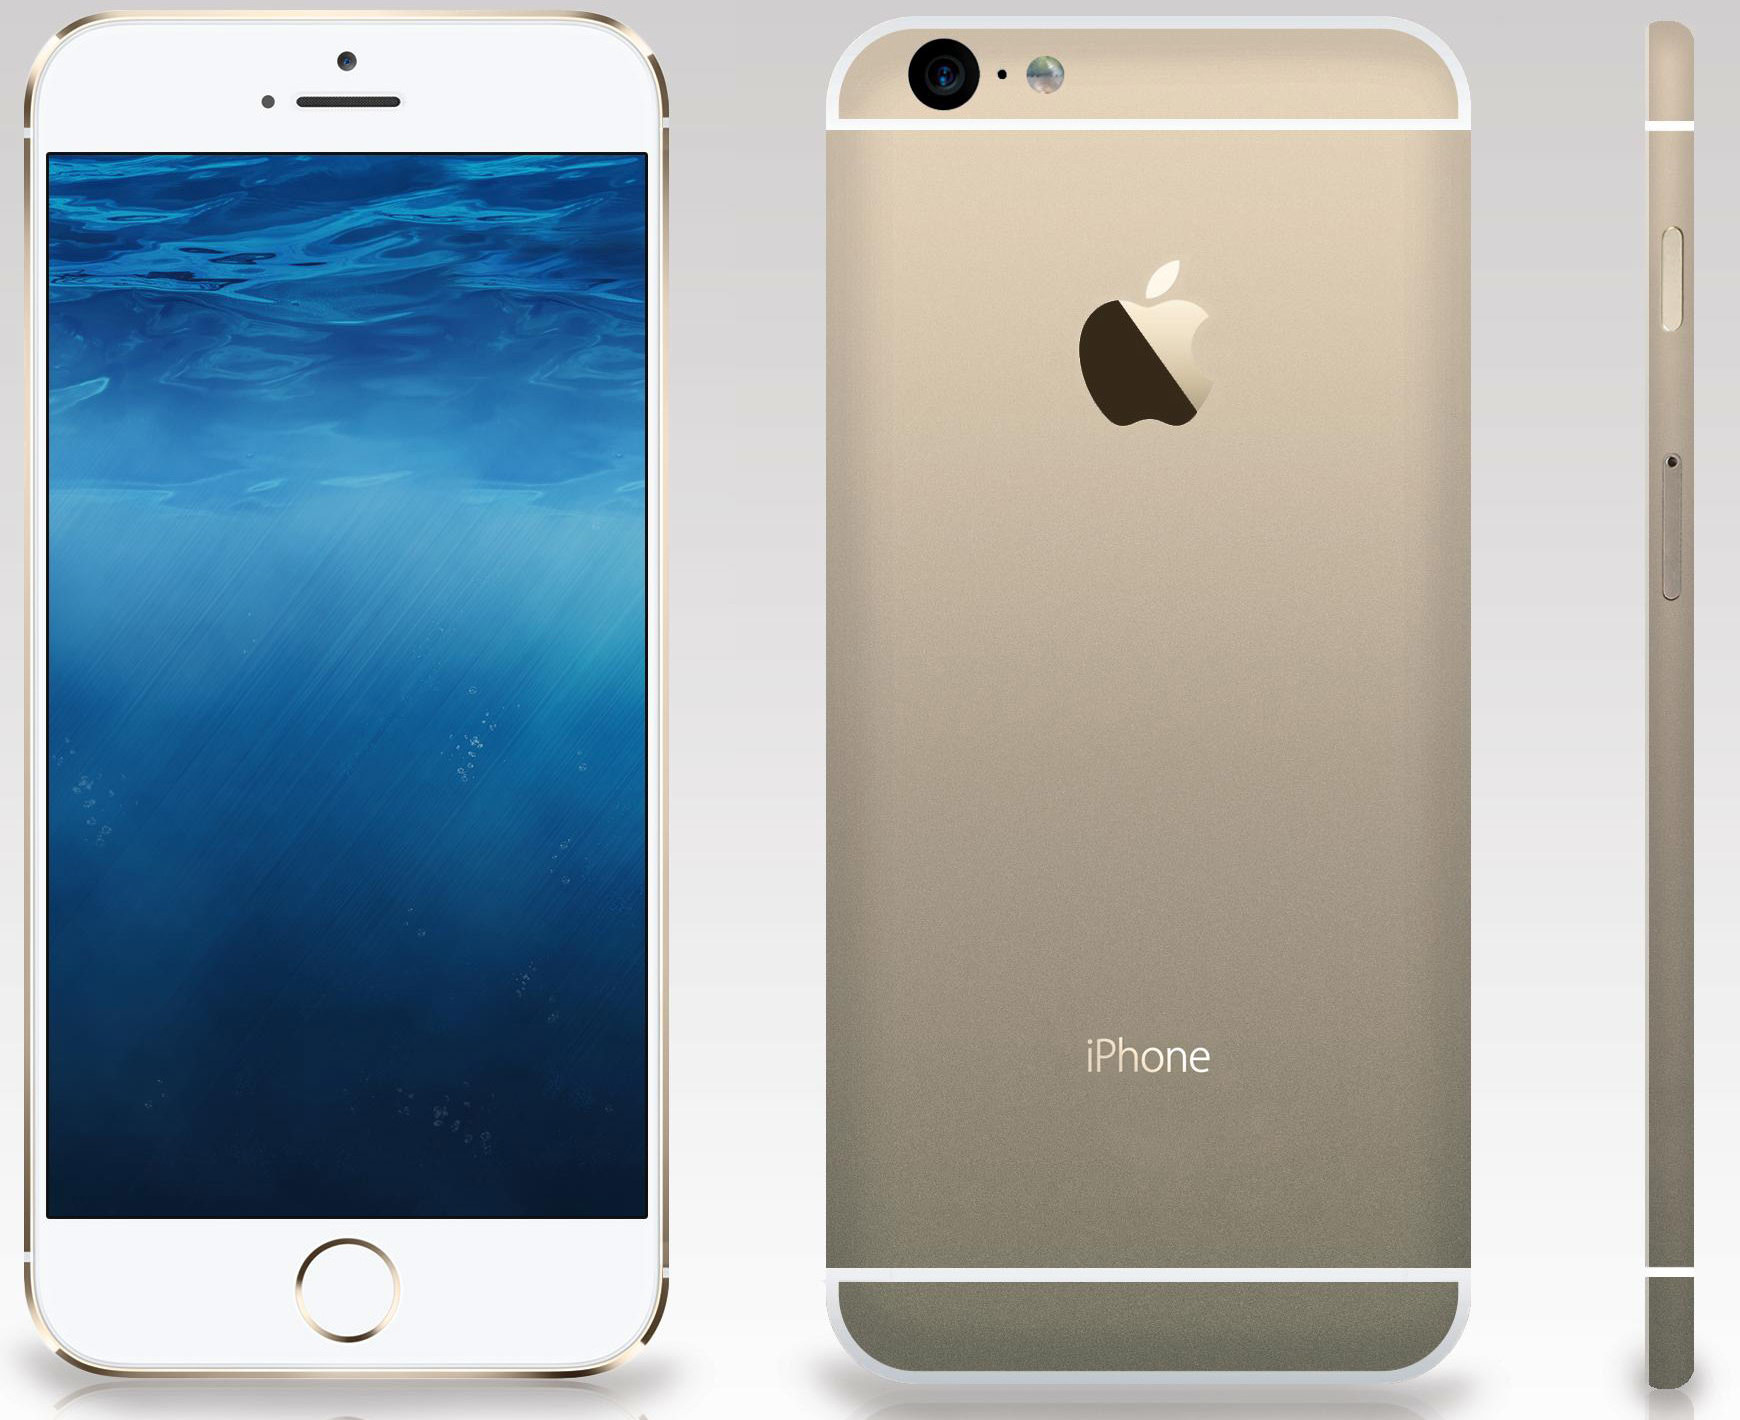 iphone 6s features apple iphone 6 a1549 gsm 16gb specs and price phonegg 11479